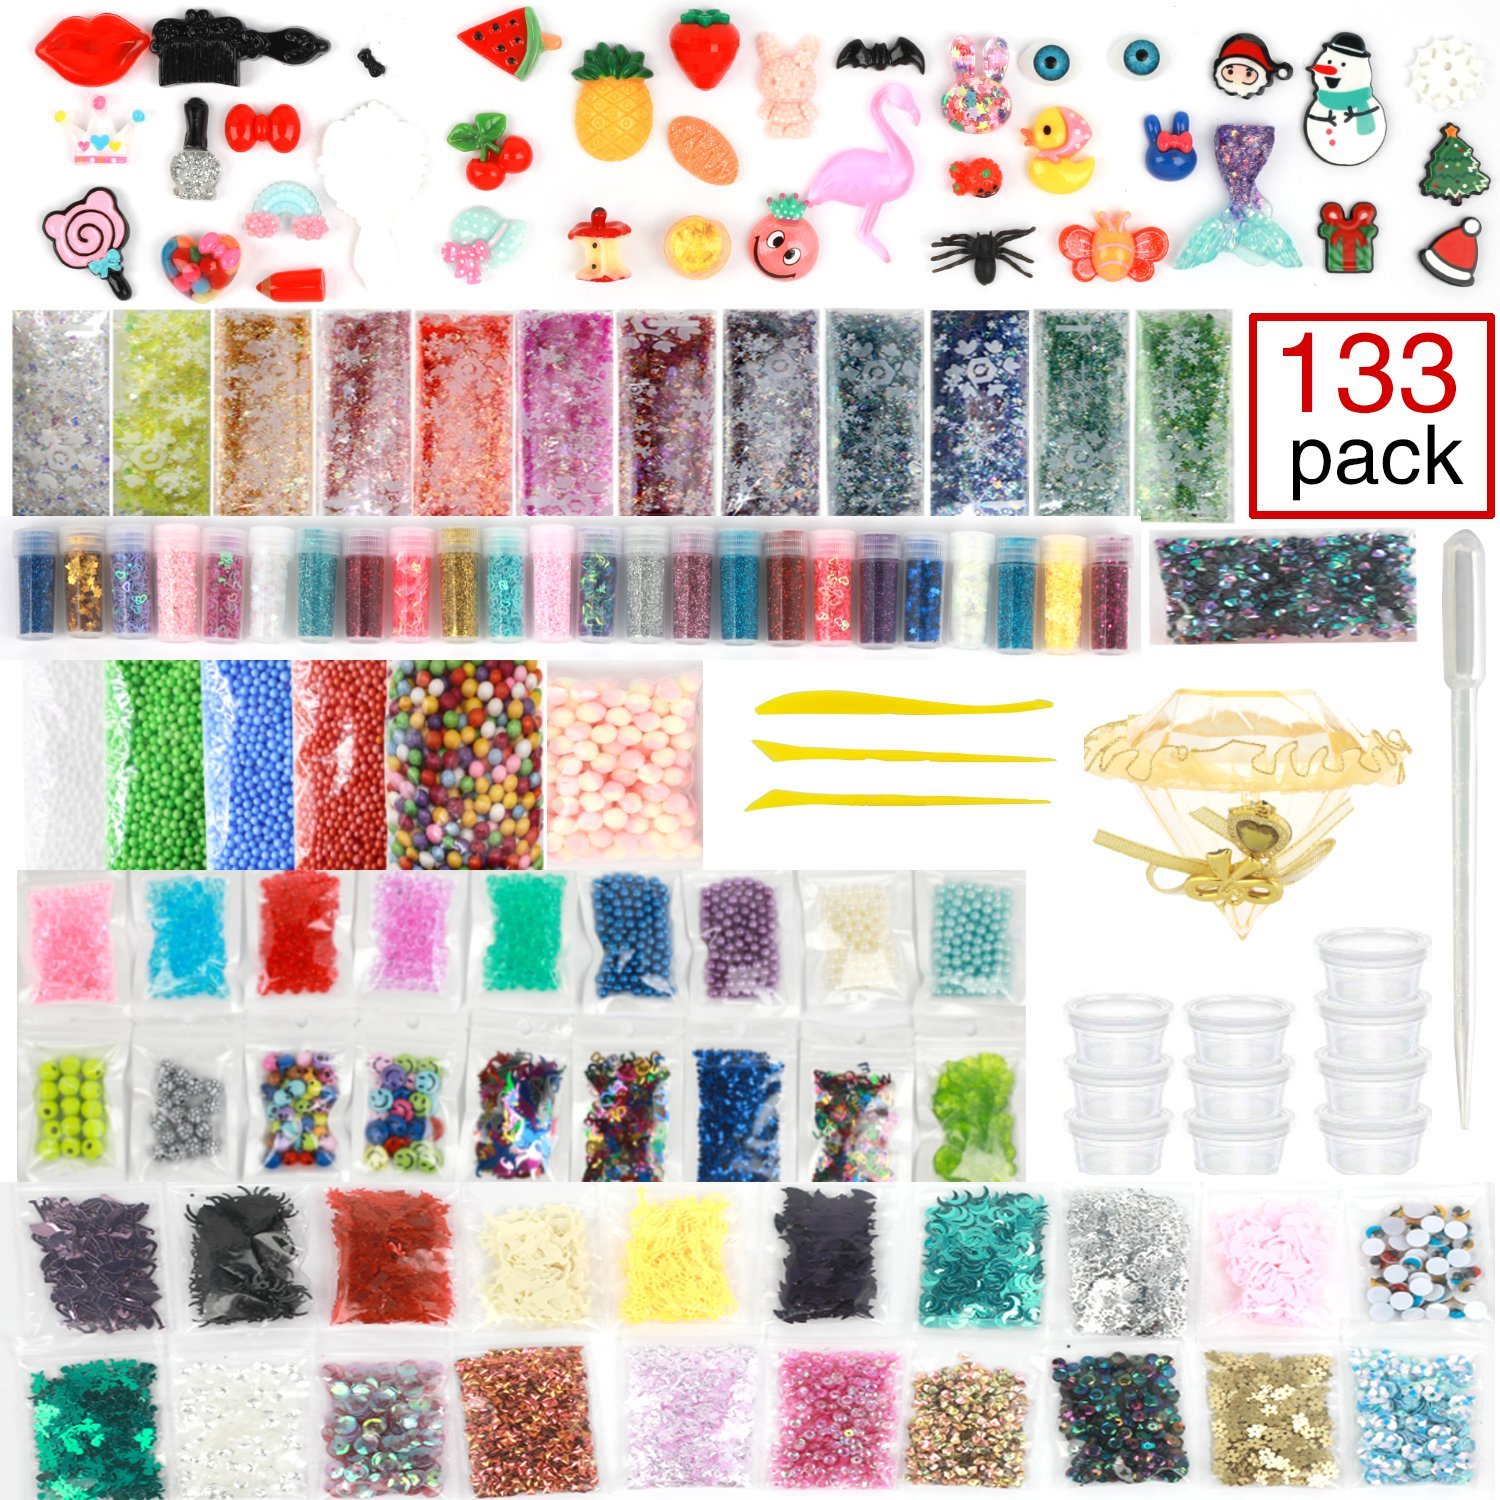 Slime Supplies kit, 133 Pack Slime Kits Include Fishbowl Beads, Pearl, Floam Beads, Glitter Jars, Confetti, Slime Charms, Slime Tools, Slime Containers, DIY Art Craft for Homemade Slime